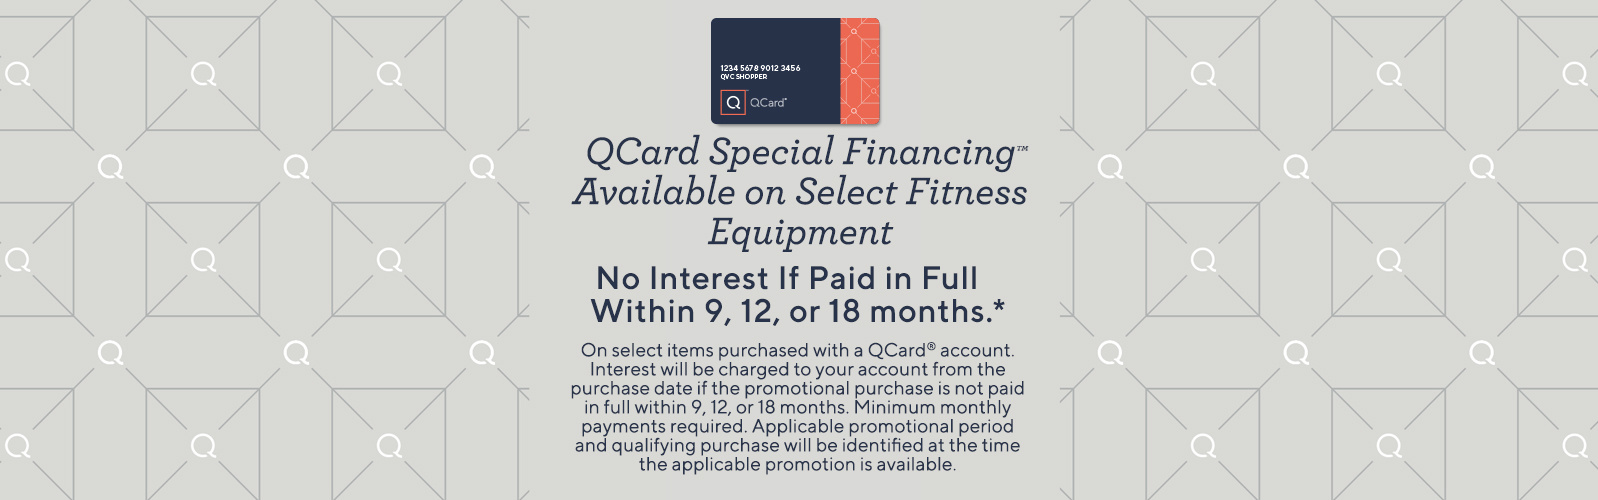 QCard Special Financing™ Available on Select Fitness Equipment.  No interest if paid in full within 9, 12, or 18 months.*  On select items purchased with a QCard® account. Interest will be charged to your account from the purchase date if the promotional purchase is not paid in full within 9, 12, or 18 months. Minimum monthly payments required. Applicable promotional period and qualifying purchase will be identified at the time the applicable promotion is available.